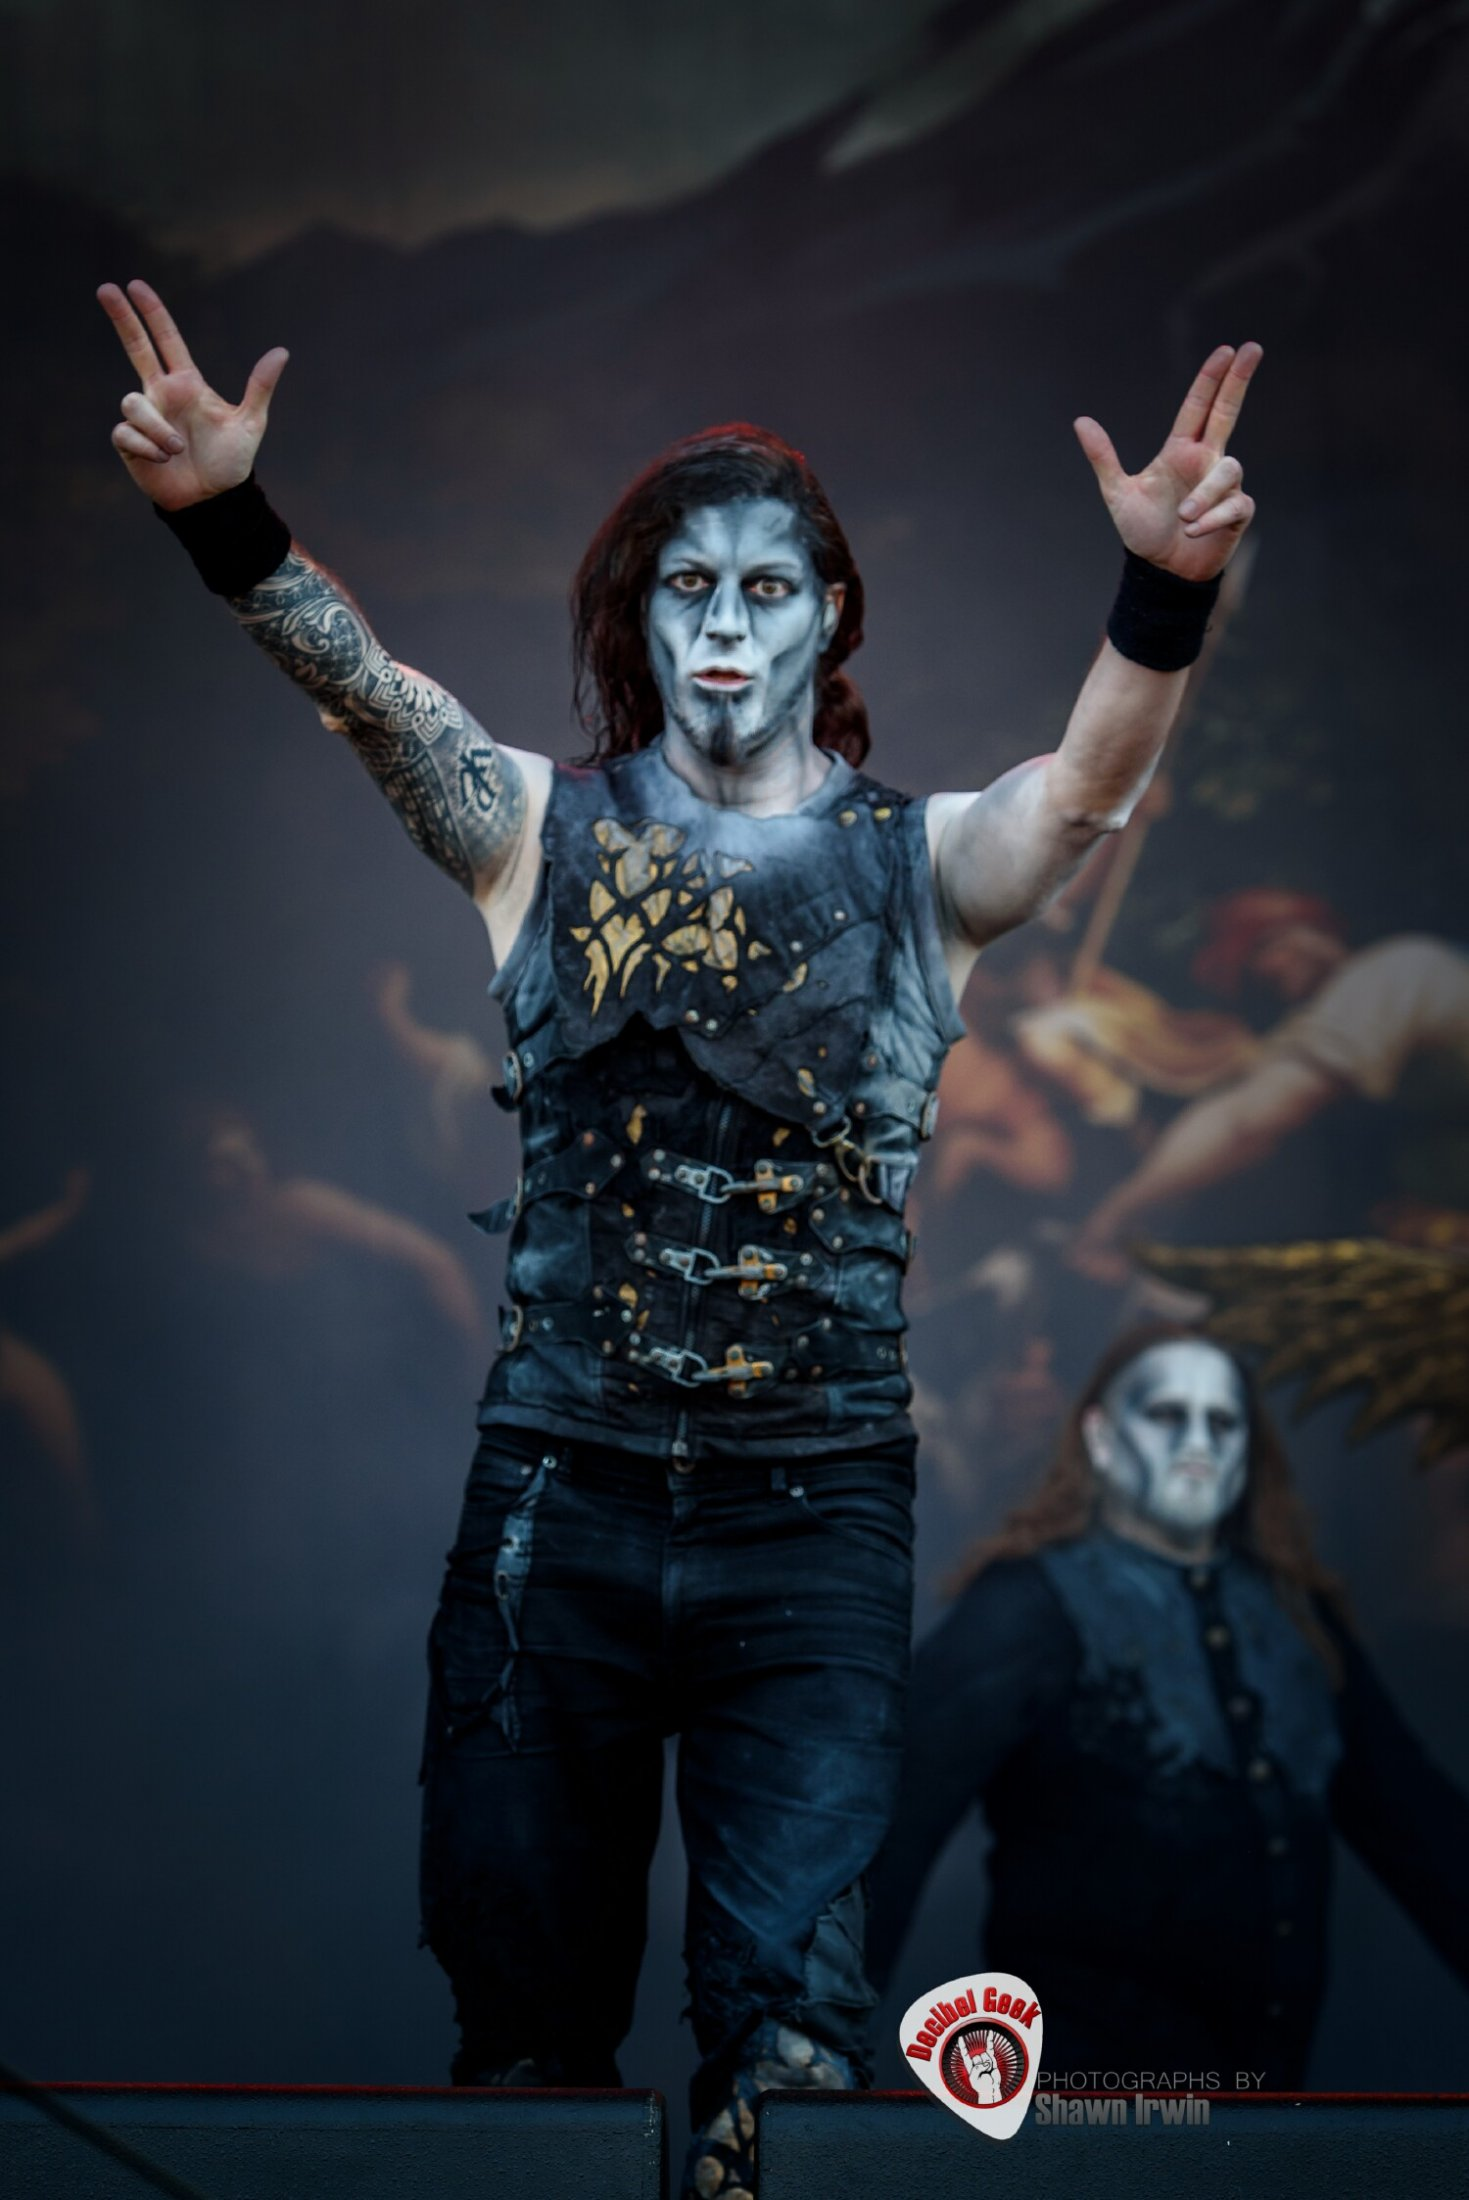 Powerwolf #22-SRF 2019-Shawn Irwin